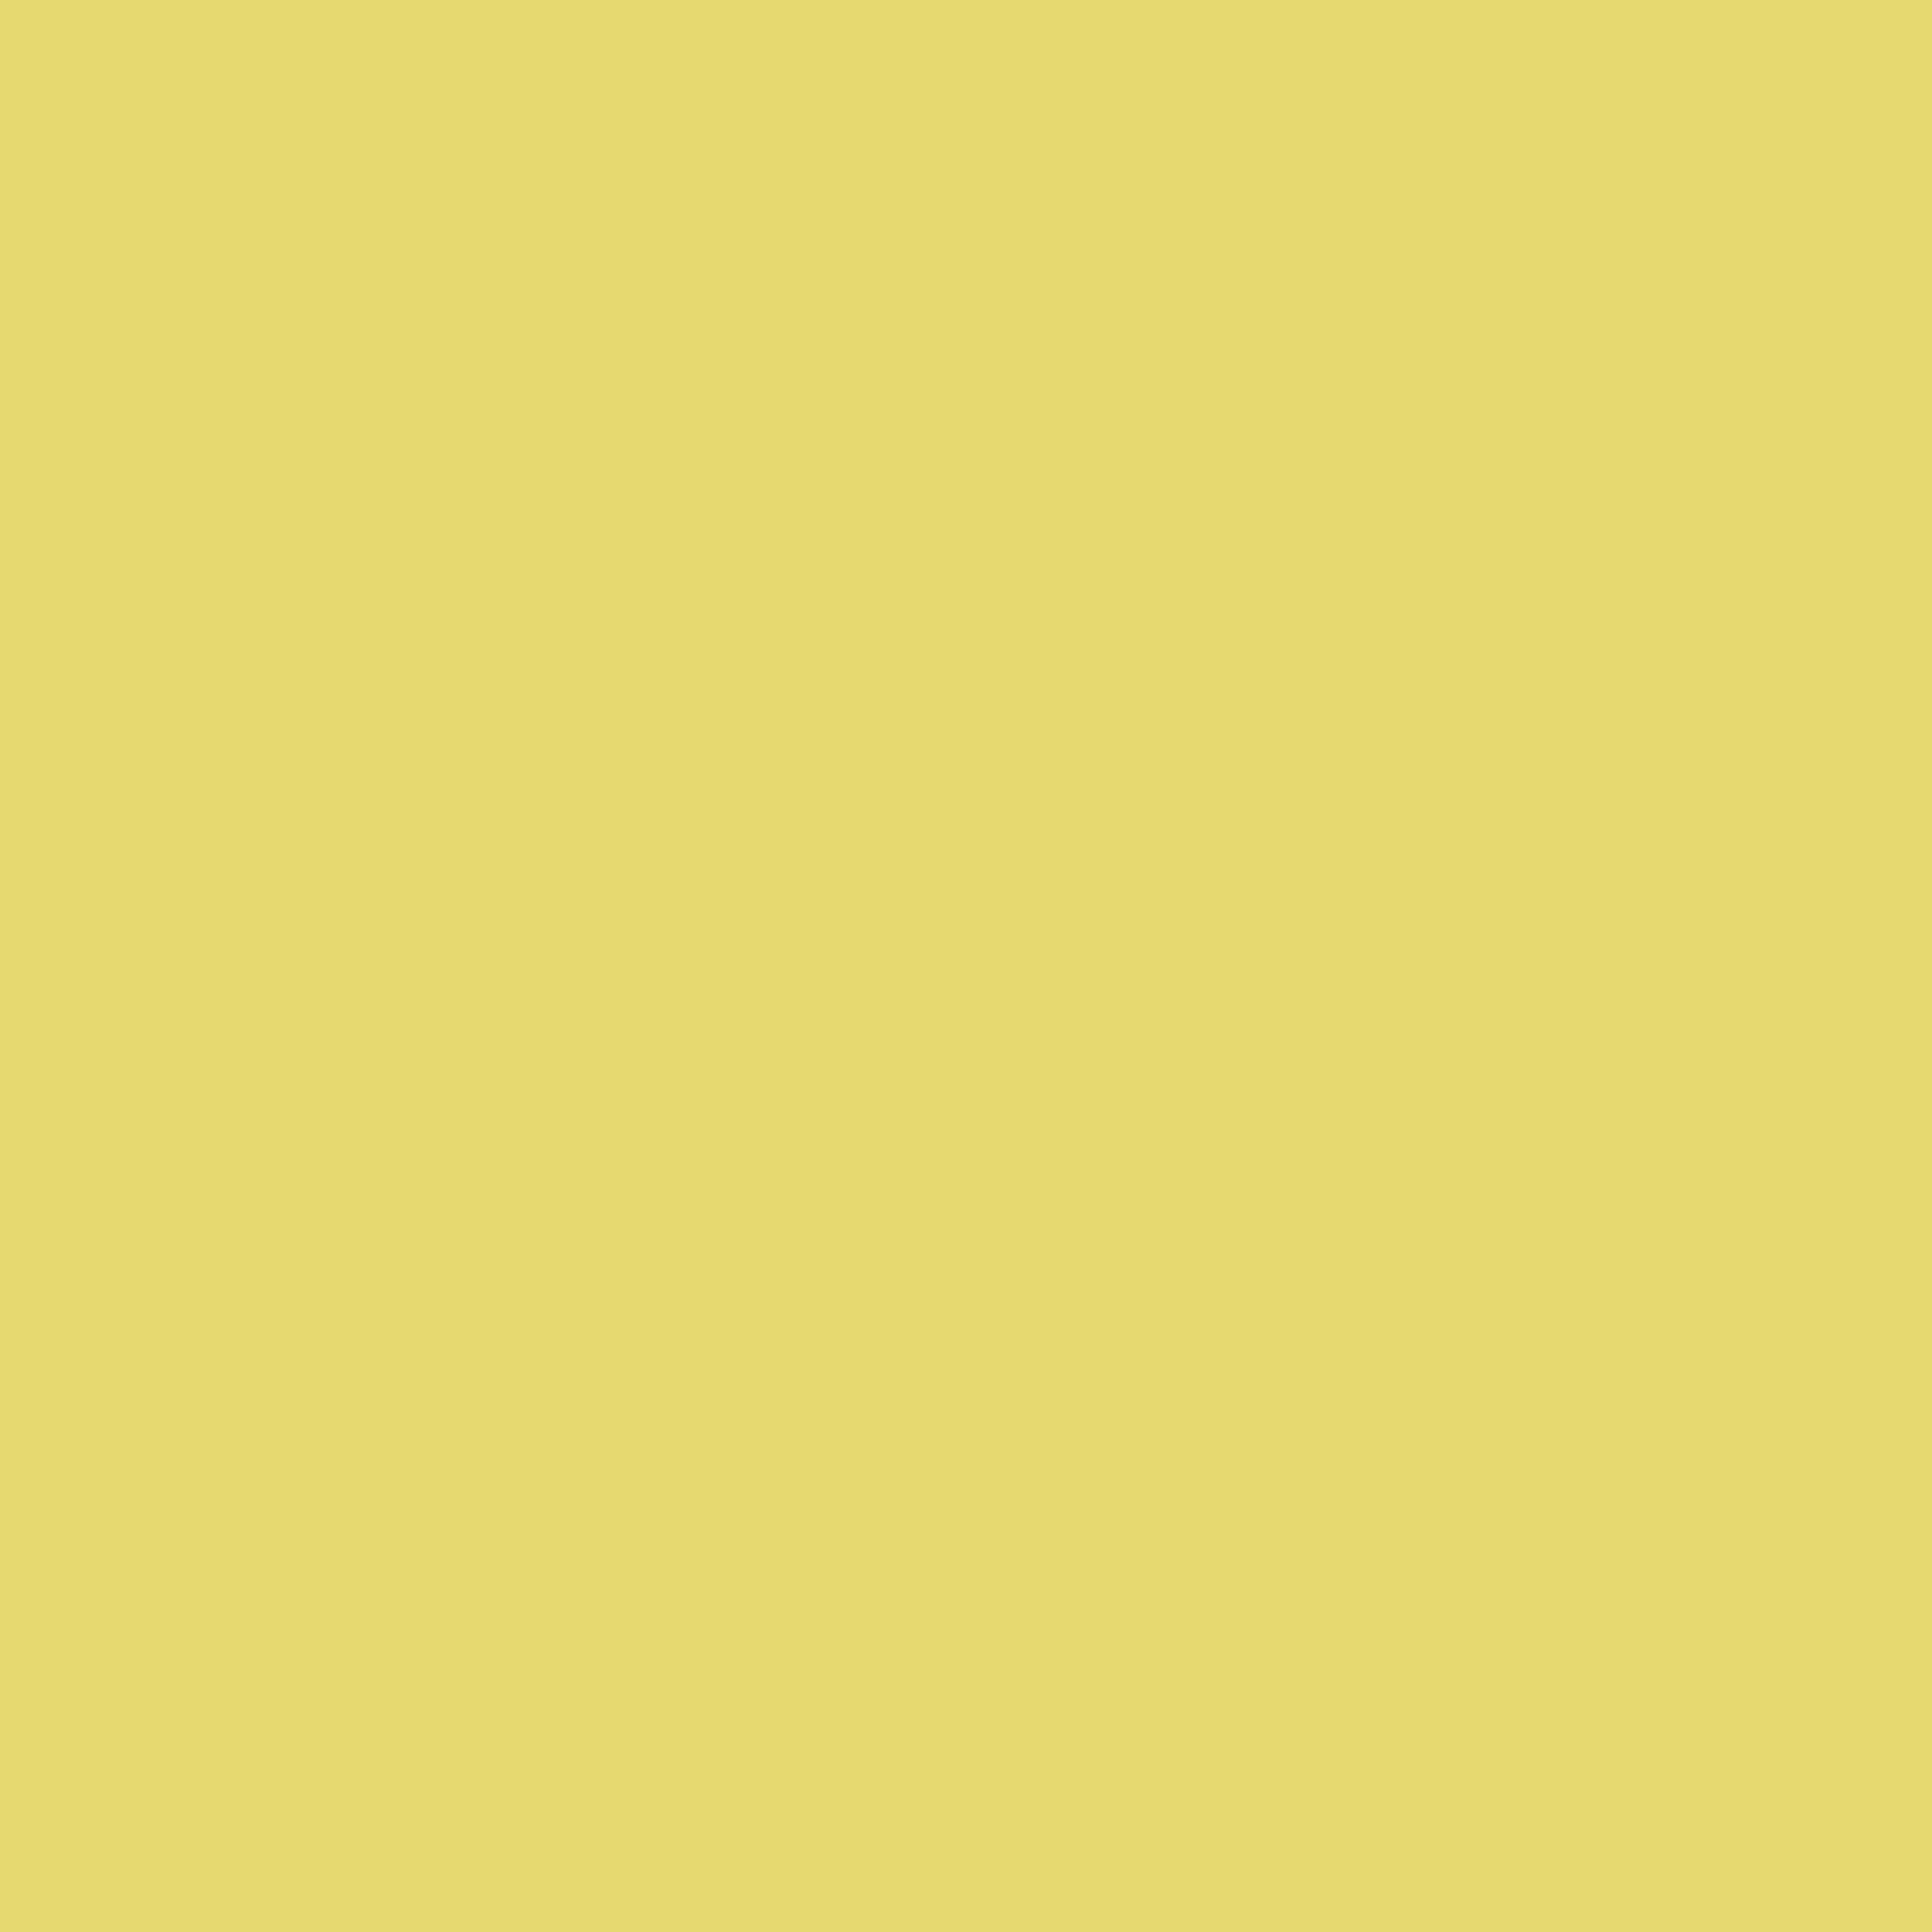 2048x2048 Straw Solid Color Background